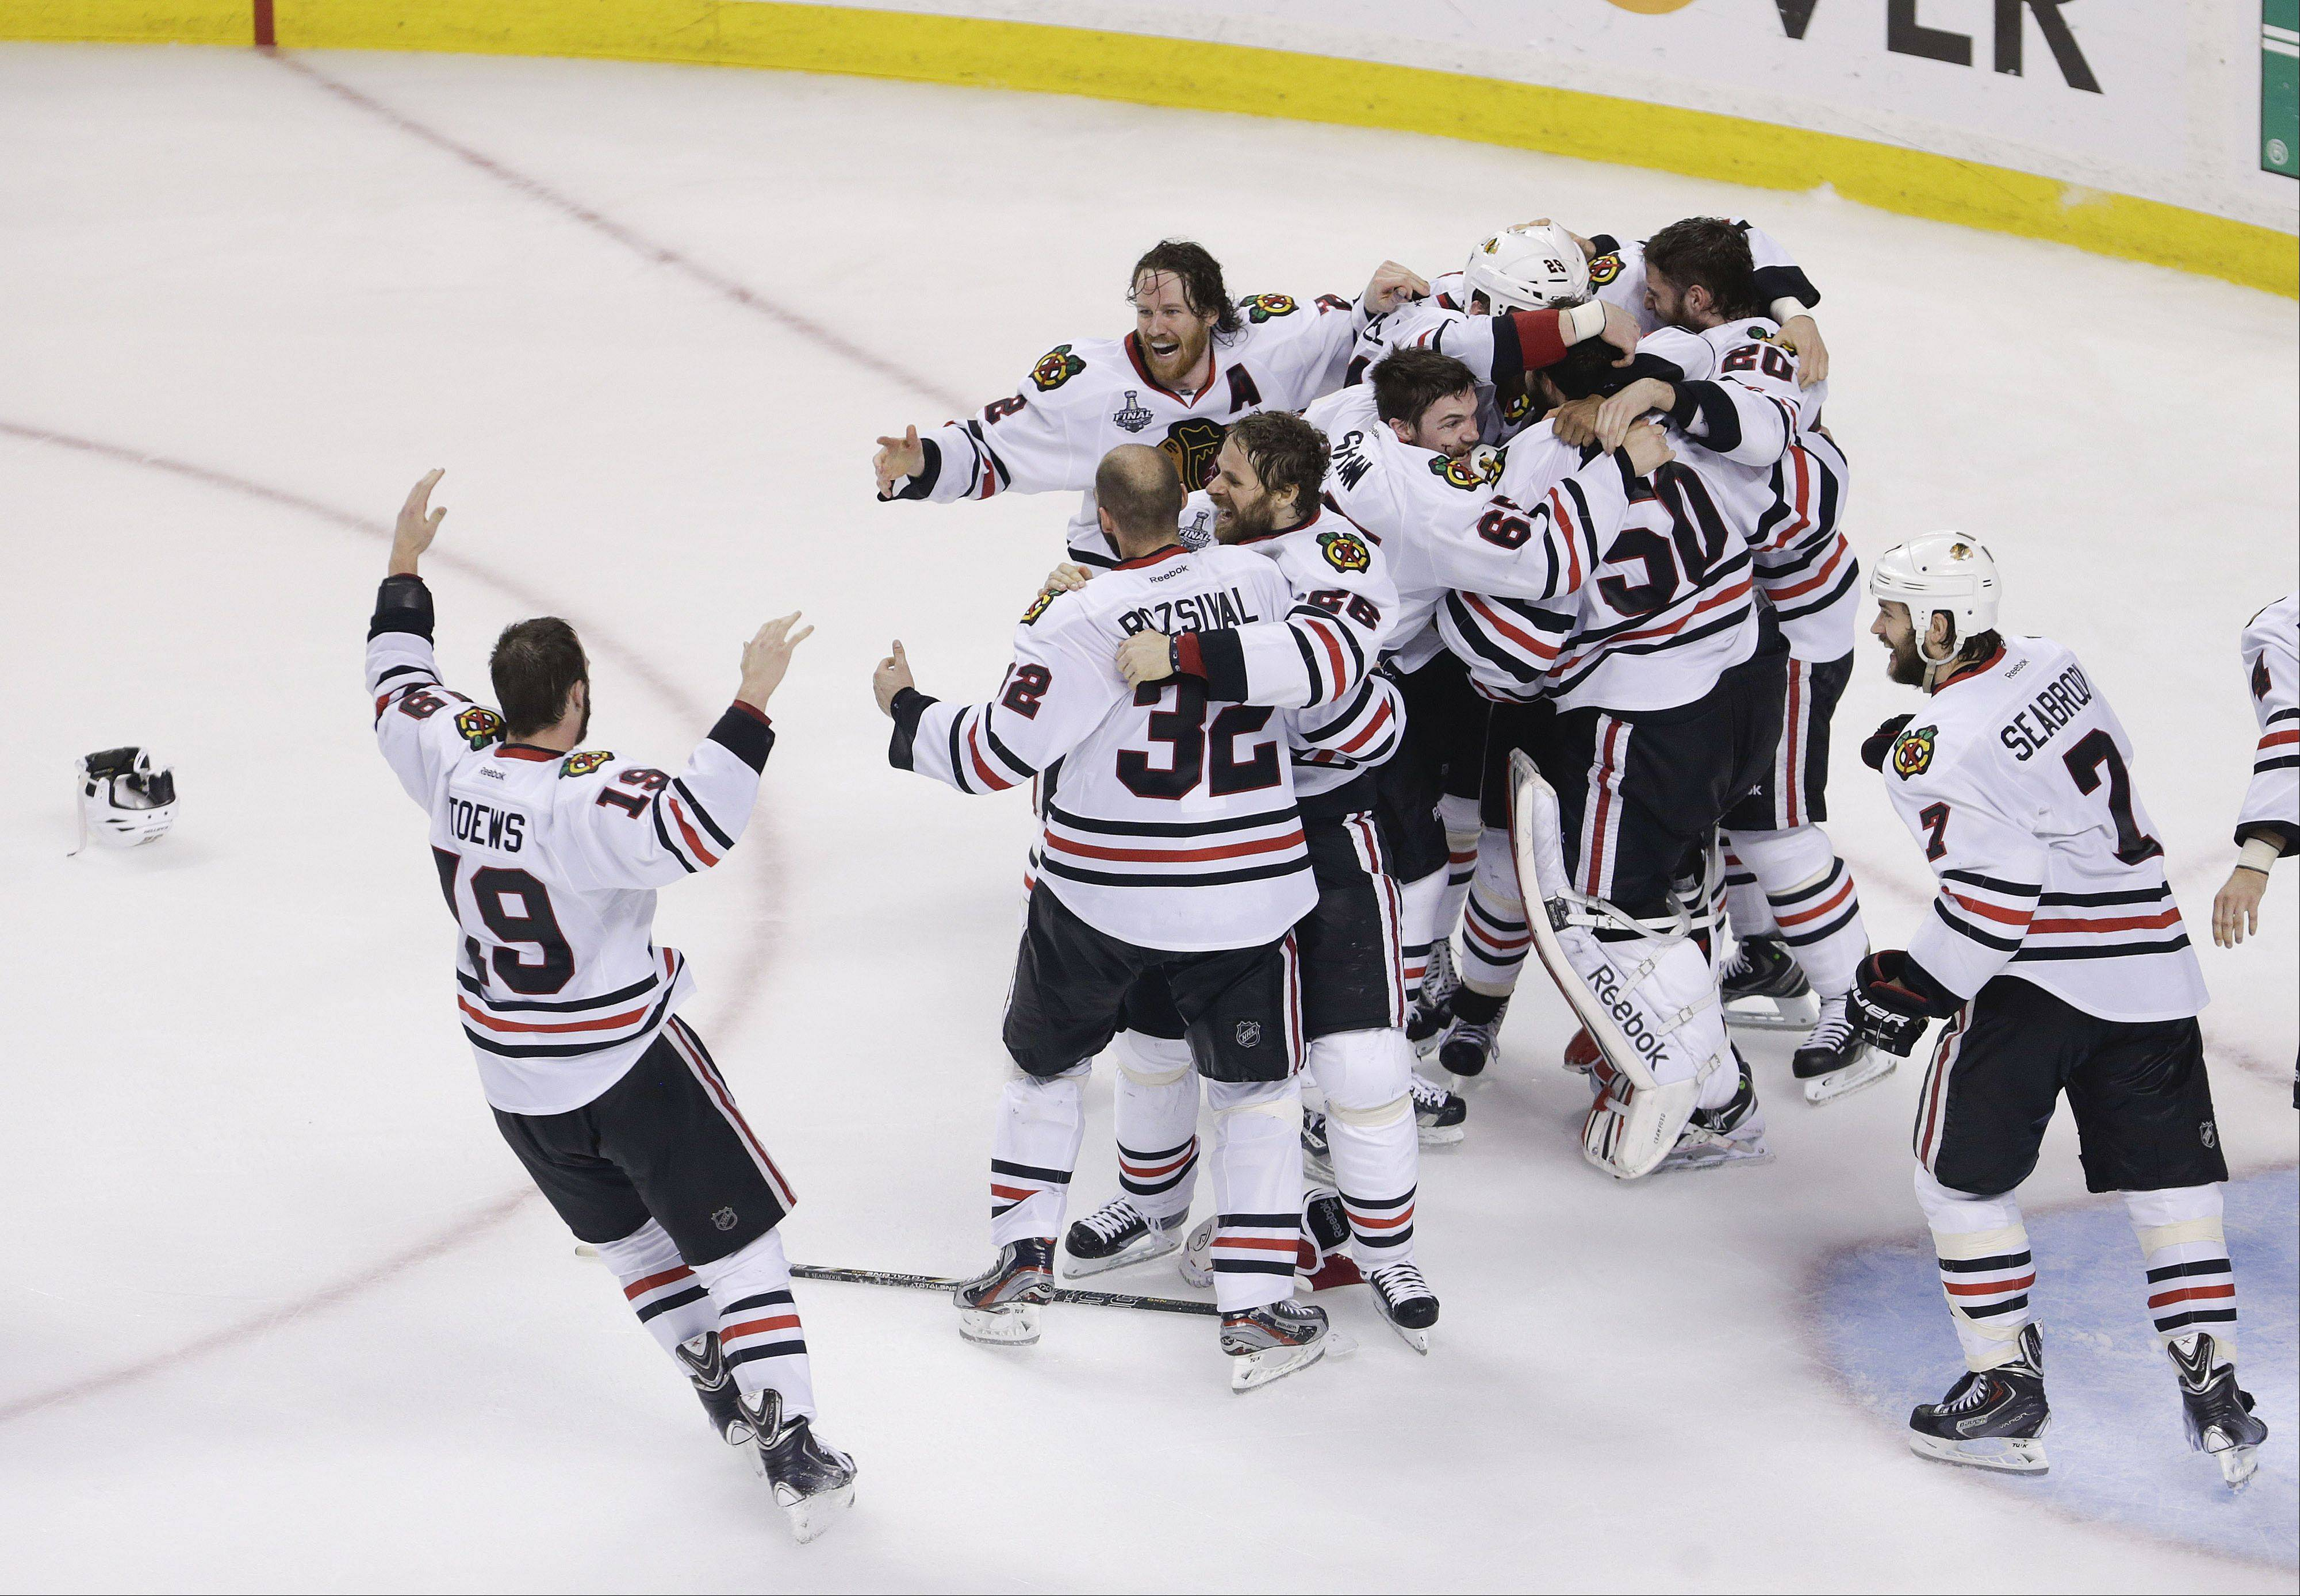 The Blackhawks celebrate their 3-2 win over the Boston Bruins Monday in Game 6 of the Stanley Cup Finals in Boston. The Hawks won the series 4-2.